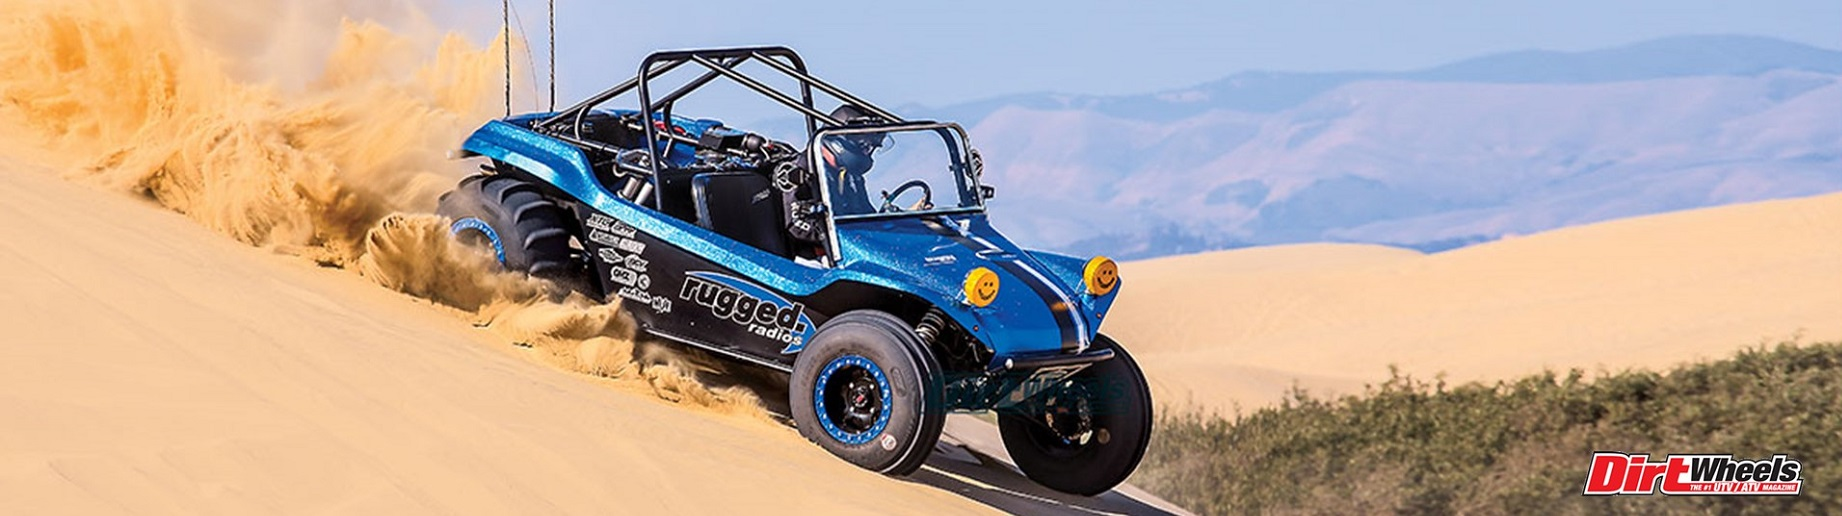 sand-and-buggy-parts-banner.jpg